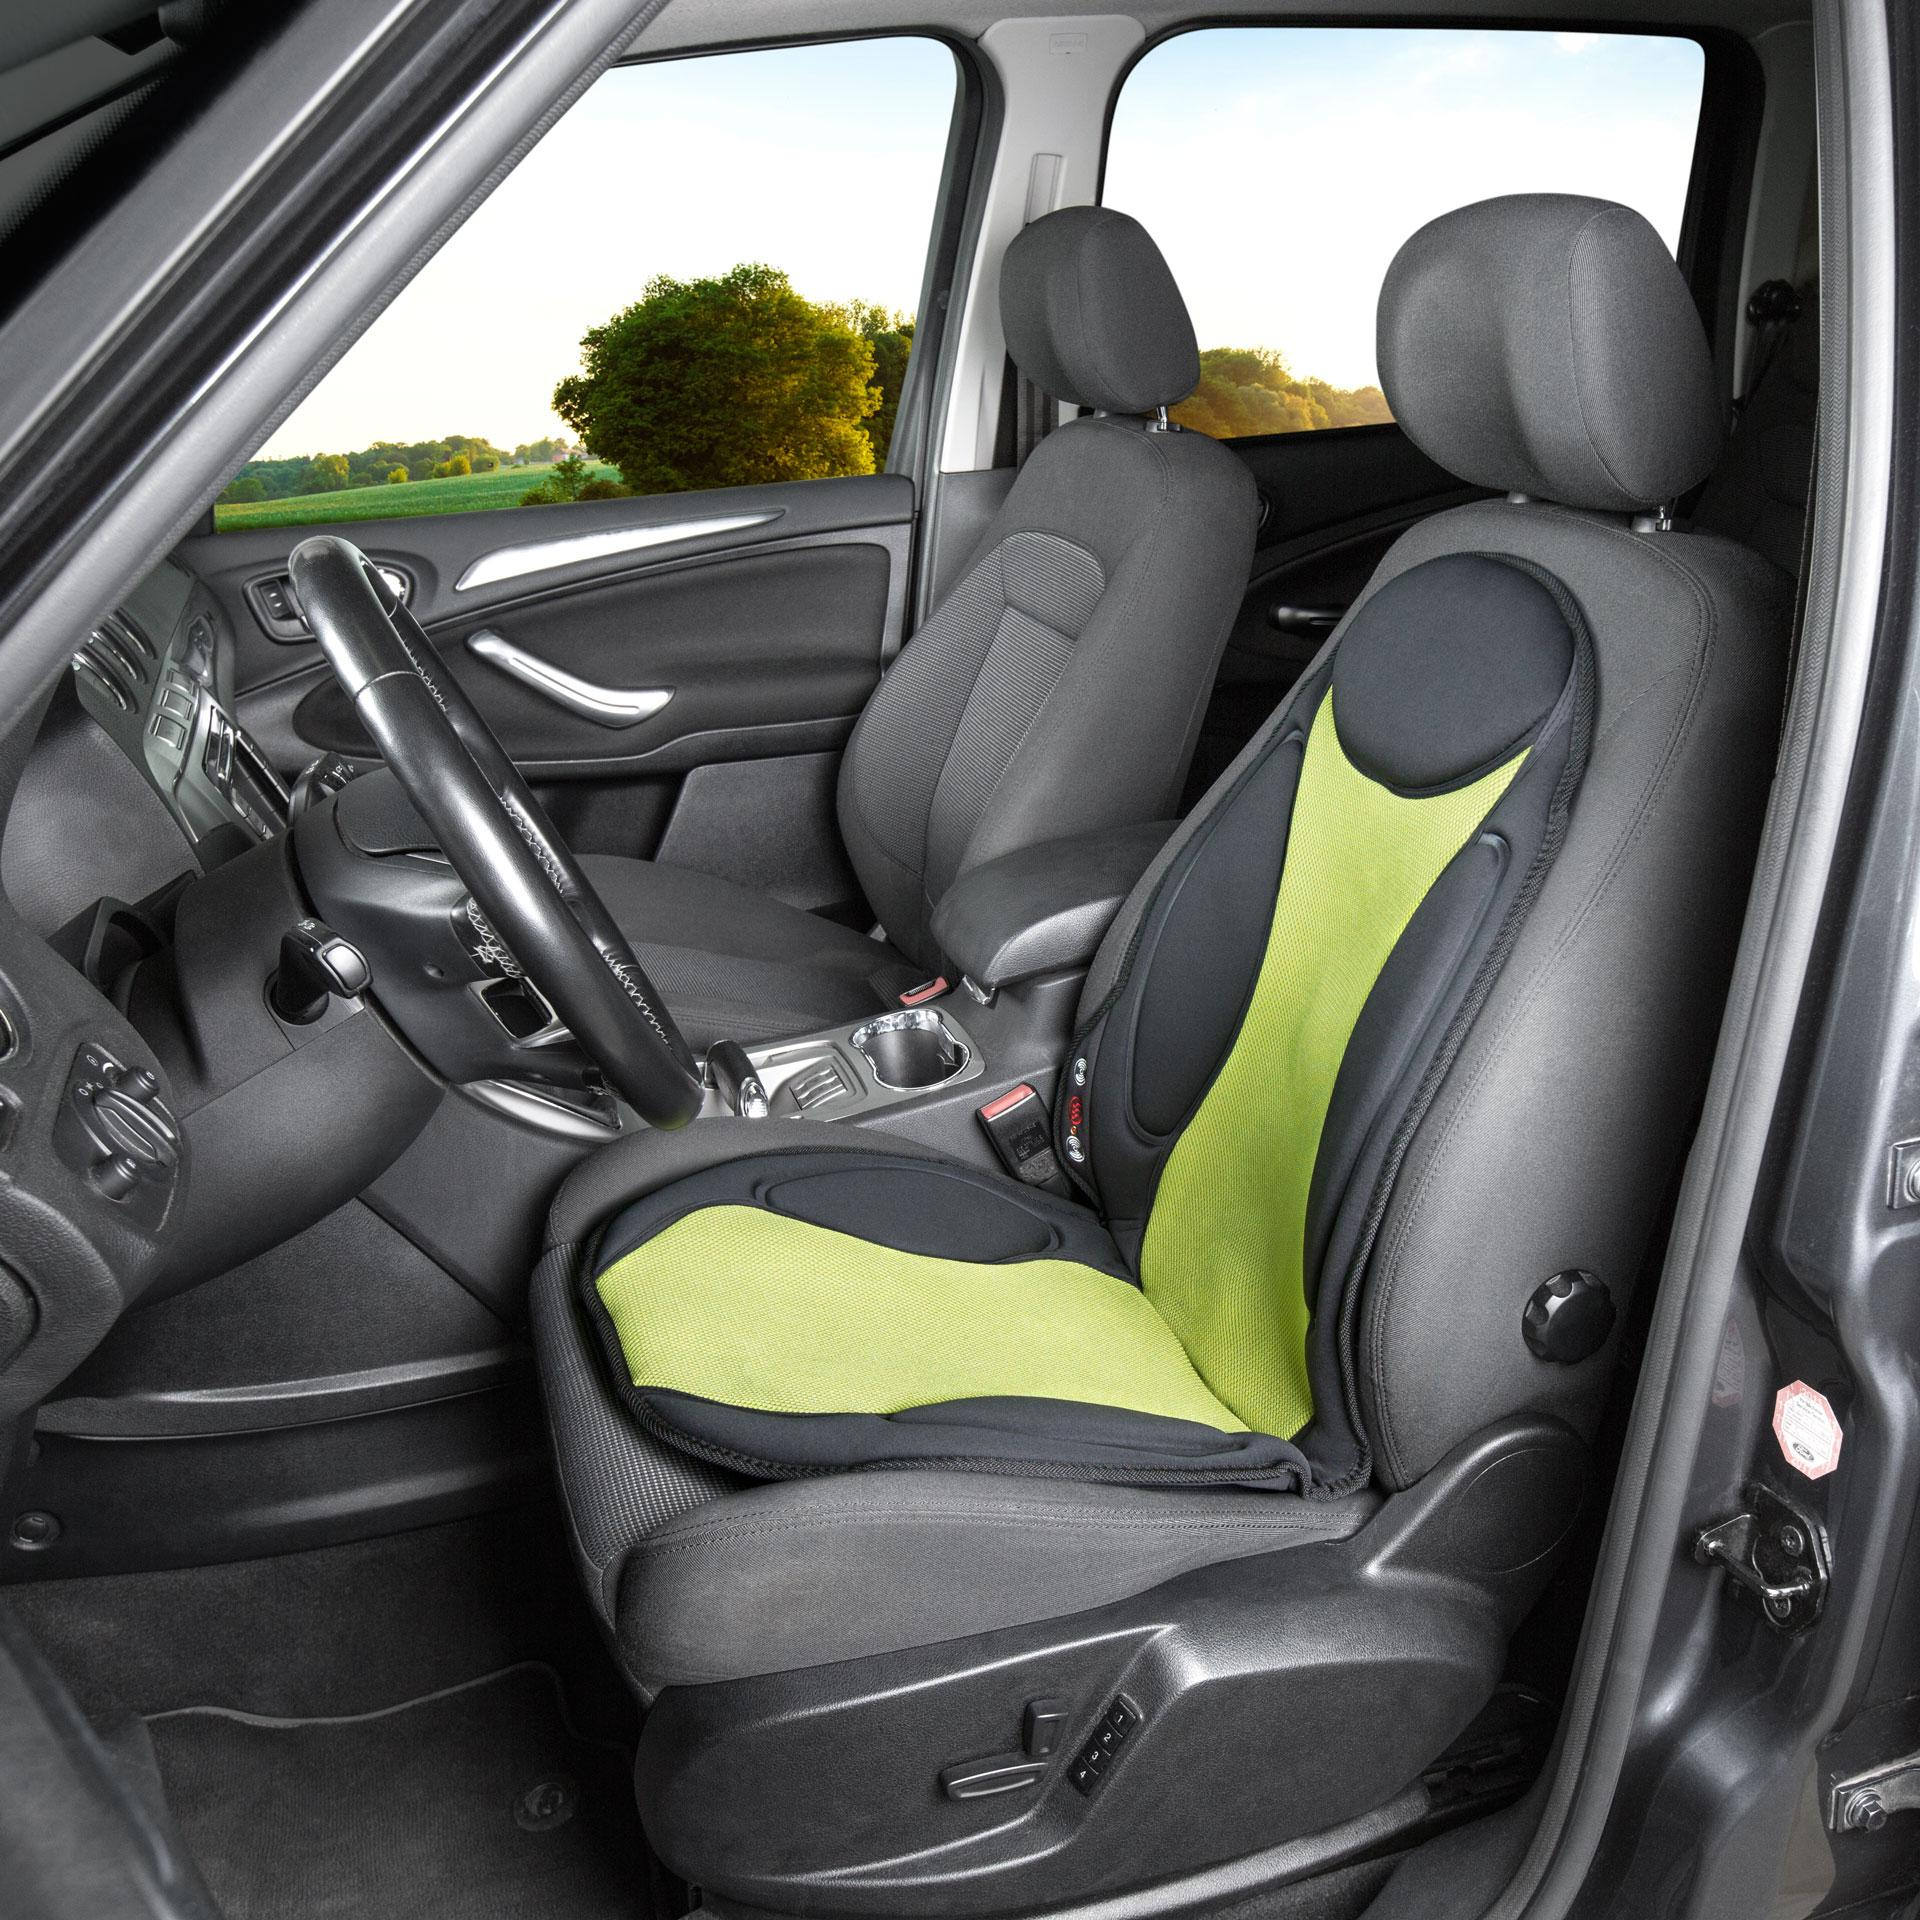 Heated Seat Cover WALSER 16769 rating